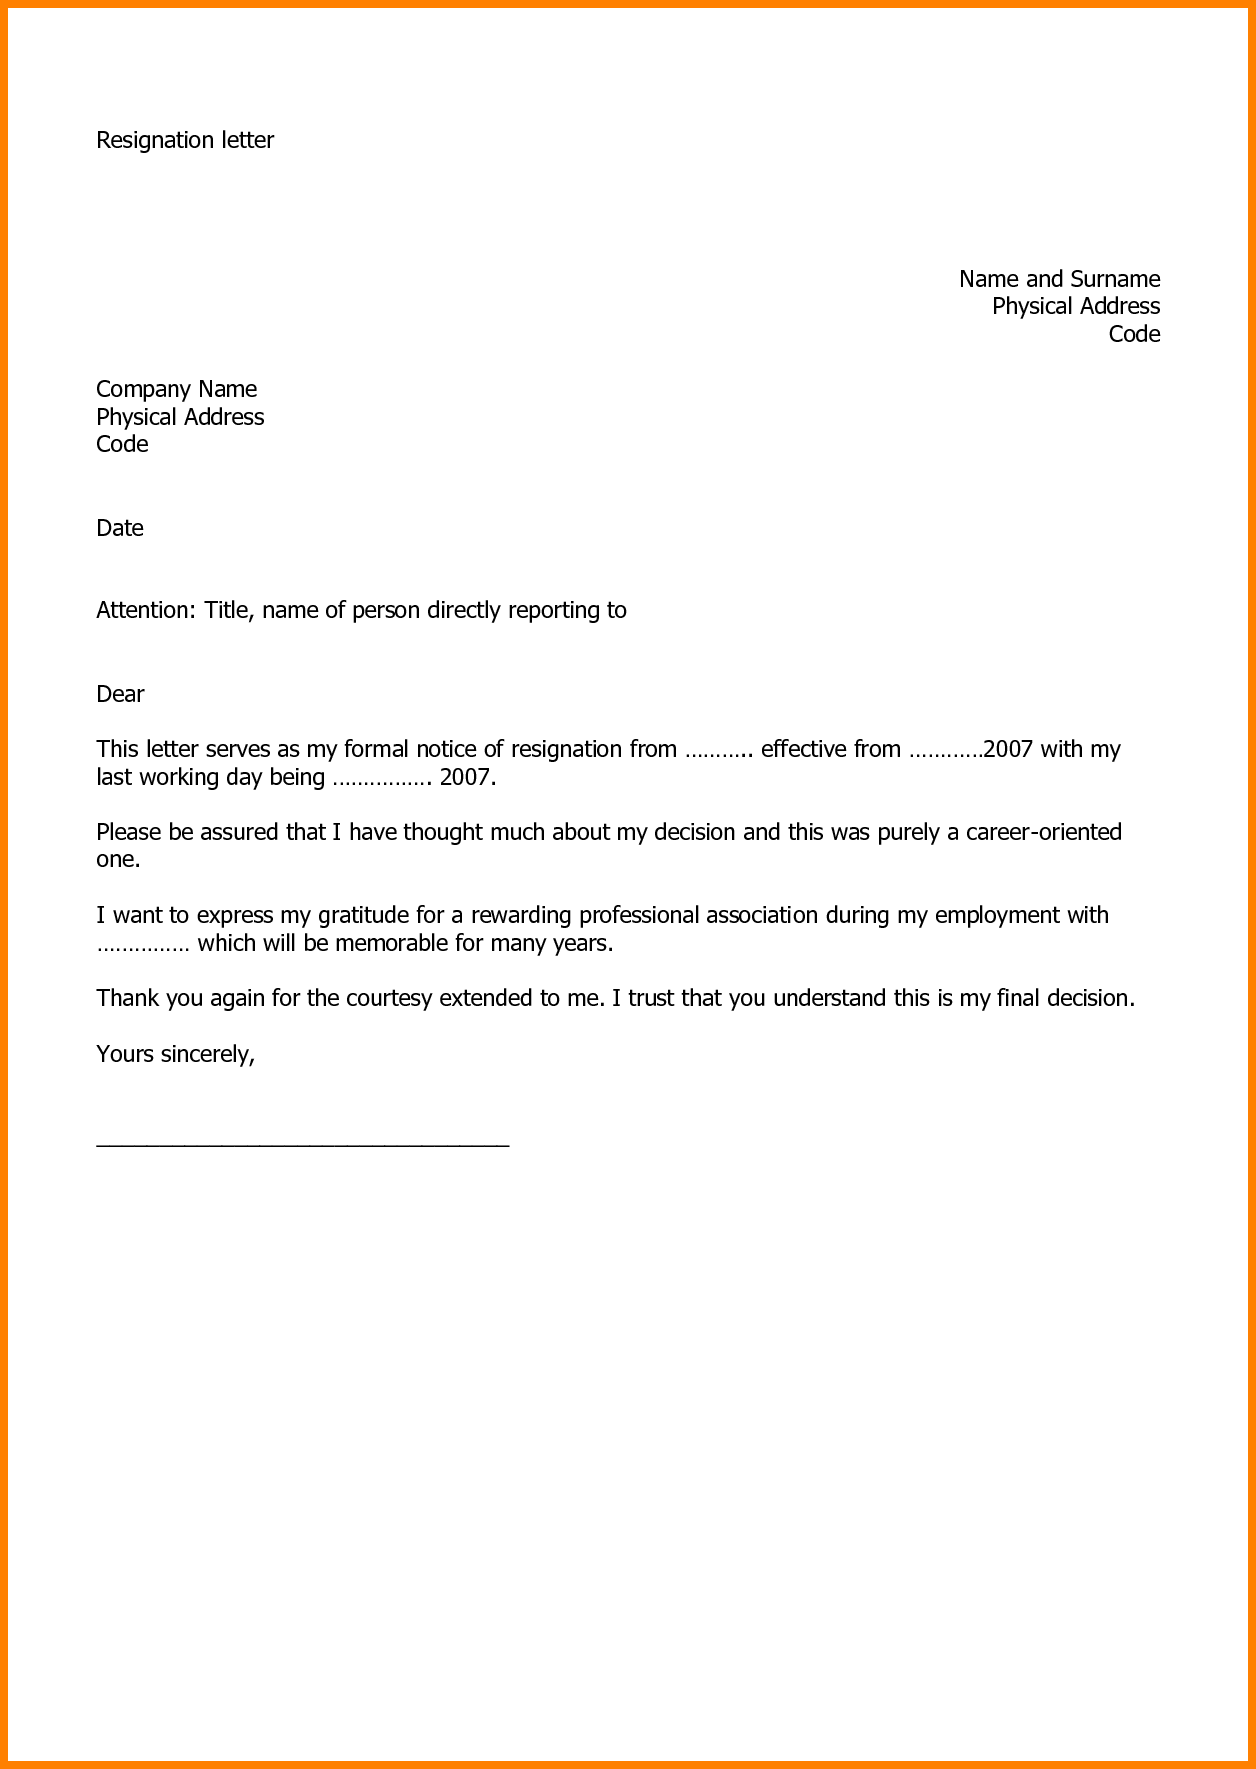 example resignation letter two weeks notice 11 40 two weeks sample thank you letter after interview fax cover sheet - How To Write A Letter In Essay Format